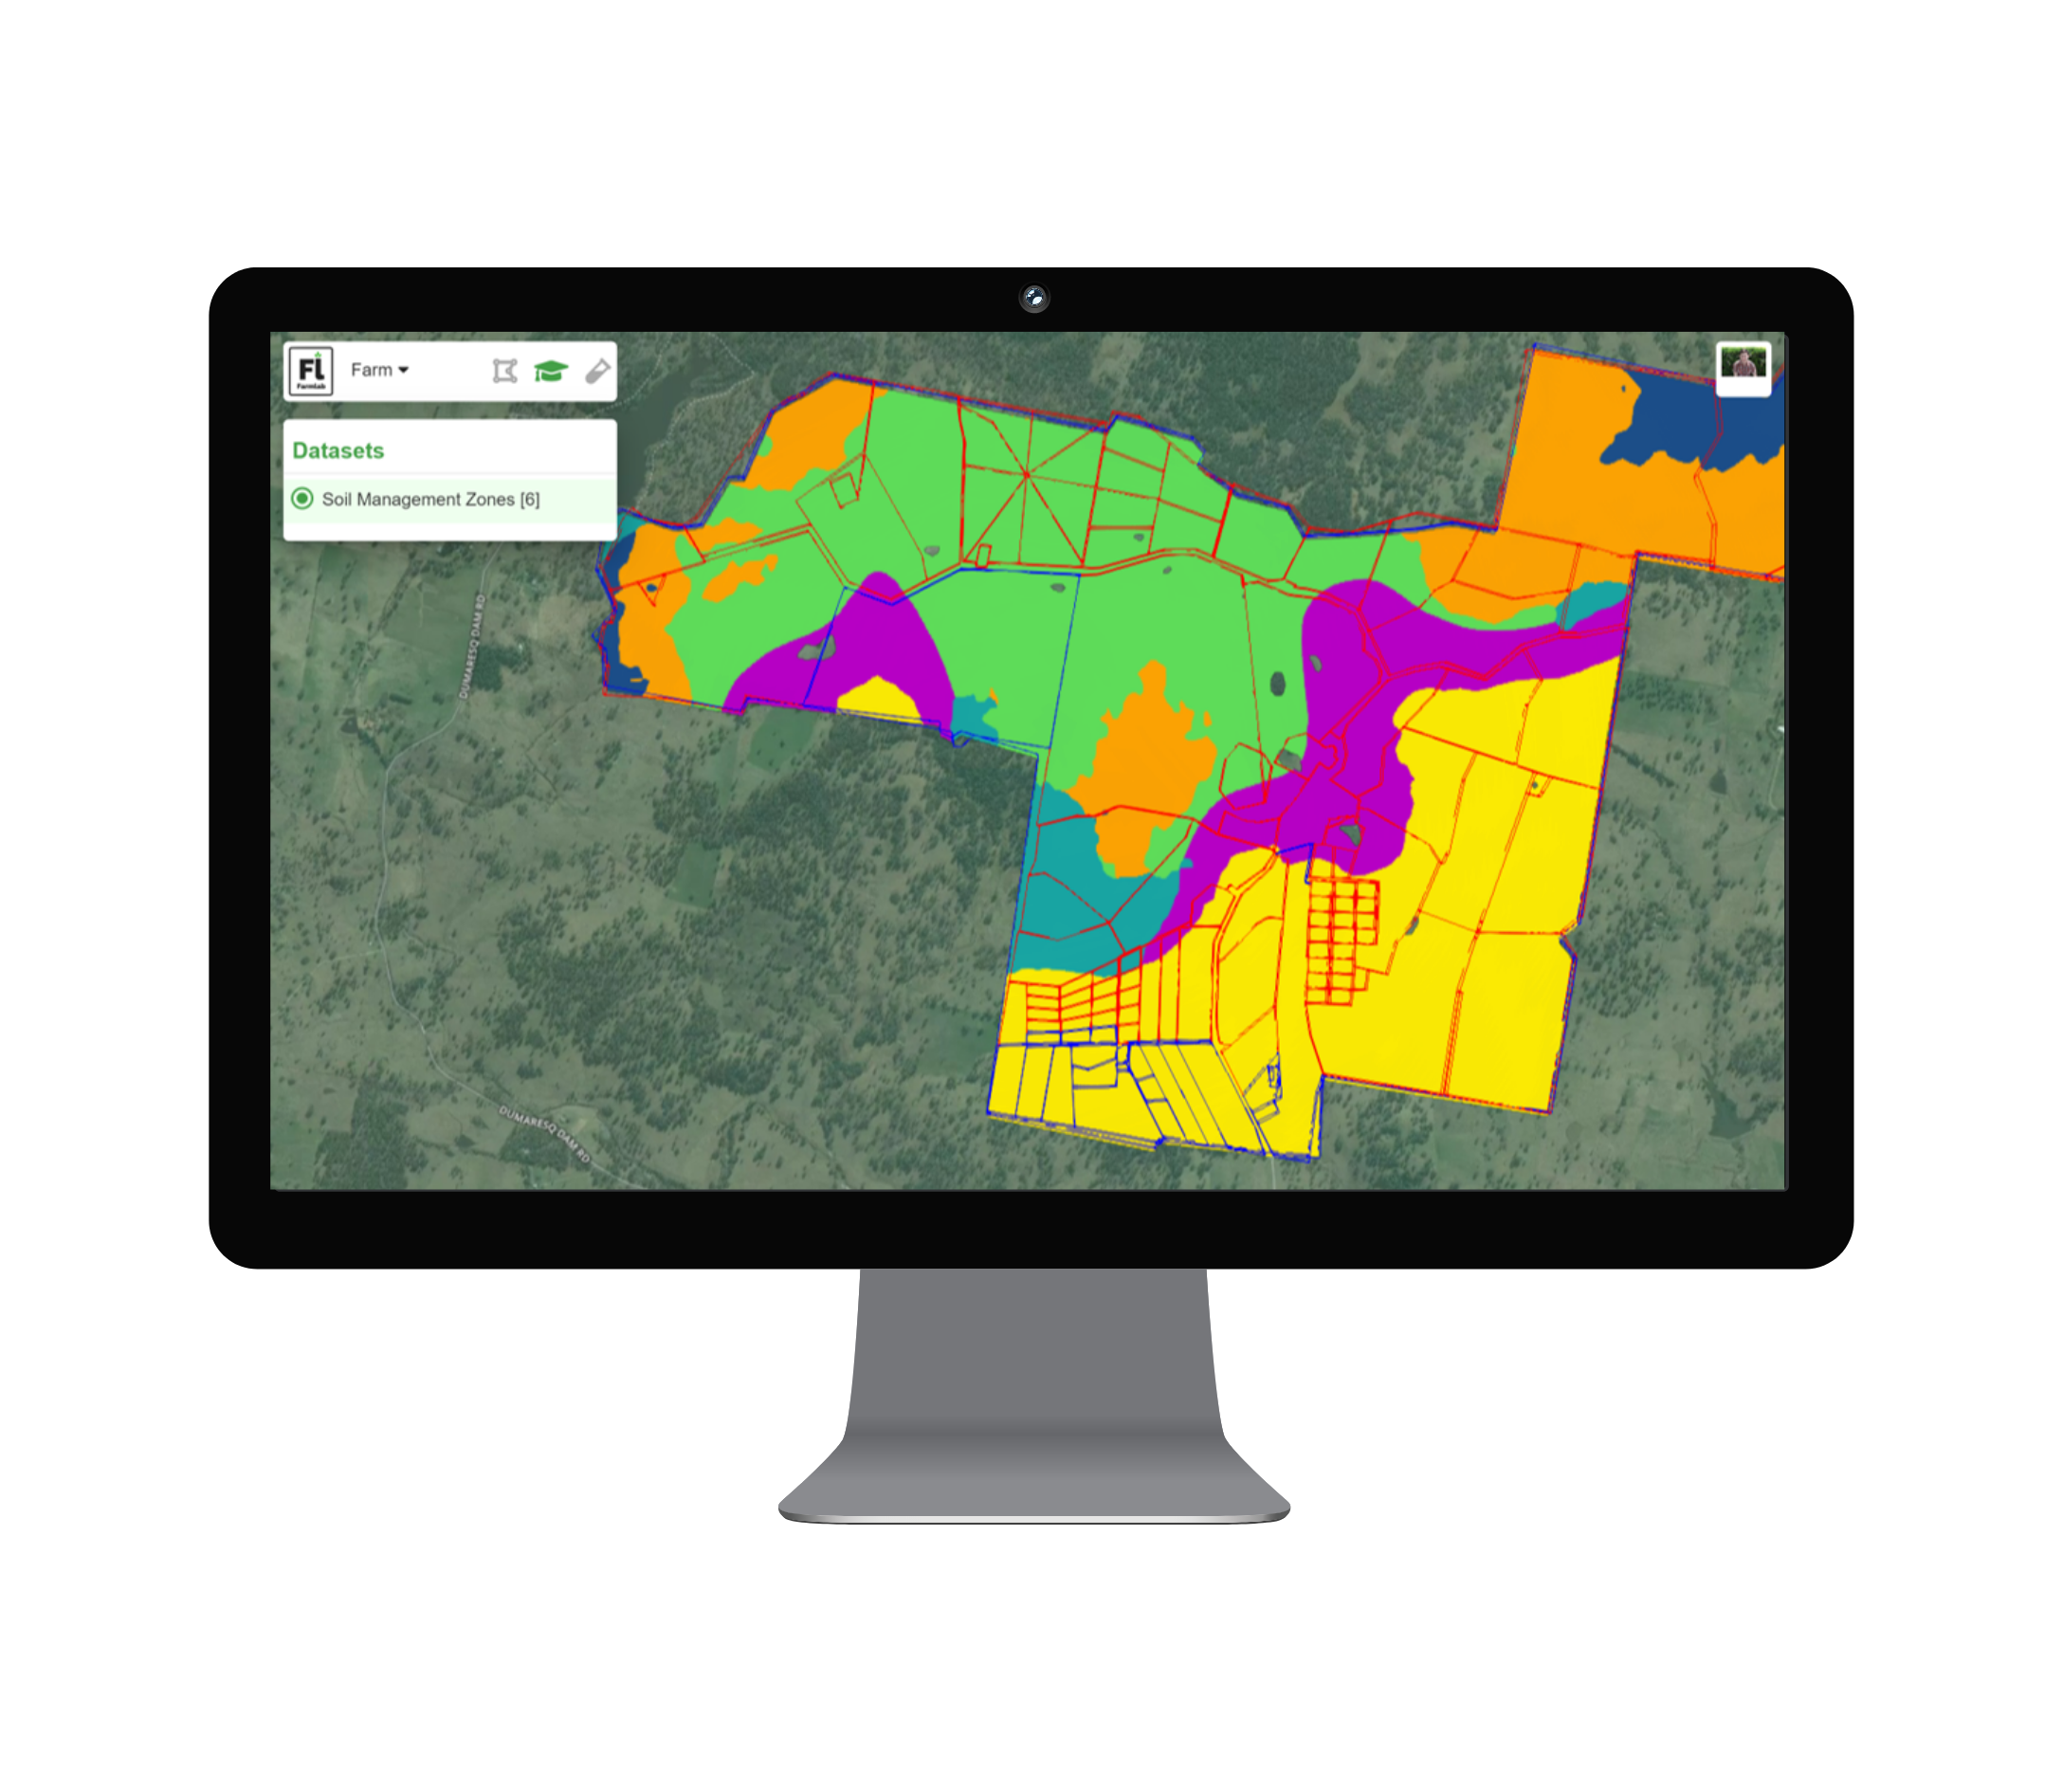 Get the most out of your soil - Whether you're a farmer, agronomist, engineer or gardener, we're here to help you get the most out of soil.Our soil maps are created using a combination of remotely sensed data and the latest in soil science and digital soil mapping techniques. We help you visualise the soil beneath your feet to help you make better decisions when it comes to inputs and land management.